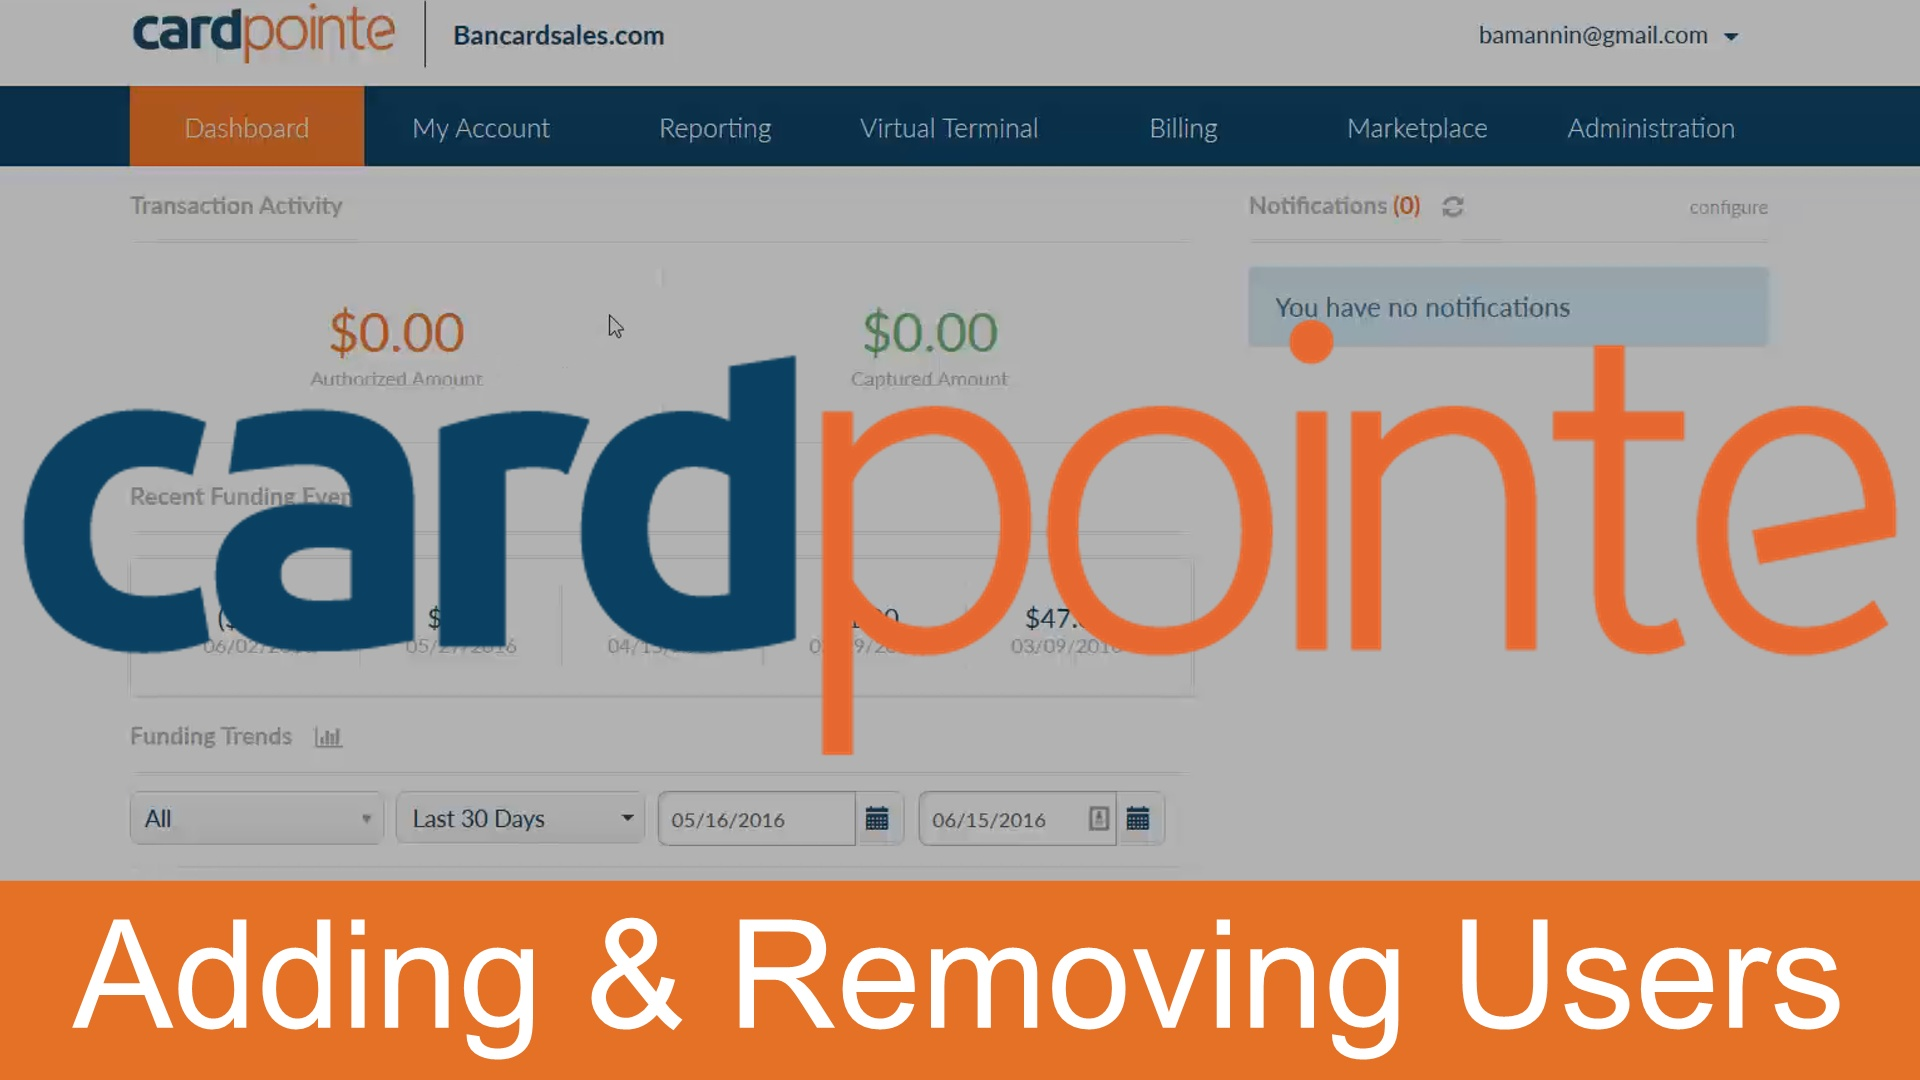 Adding_and_Removing_Users-Customizing_Cardpointe